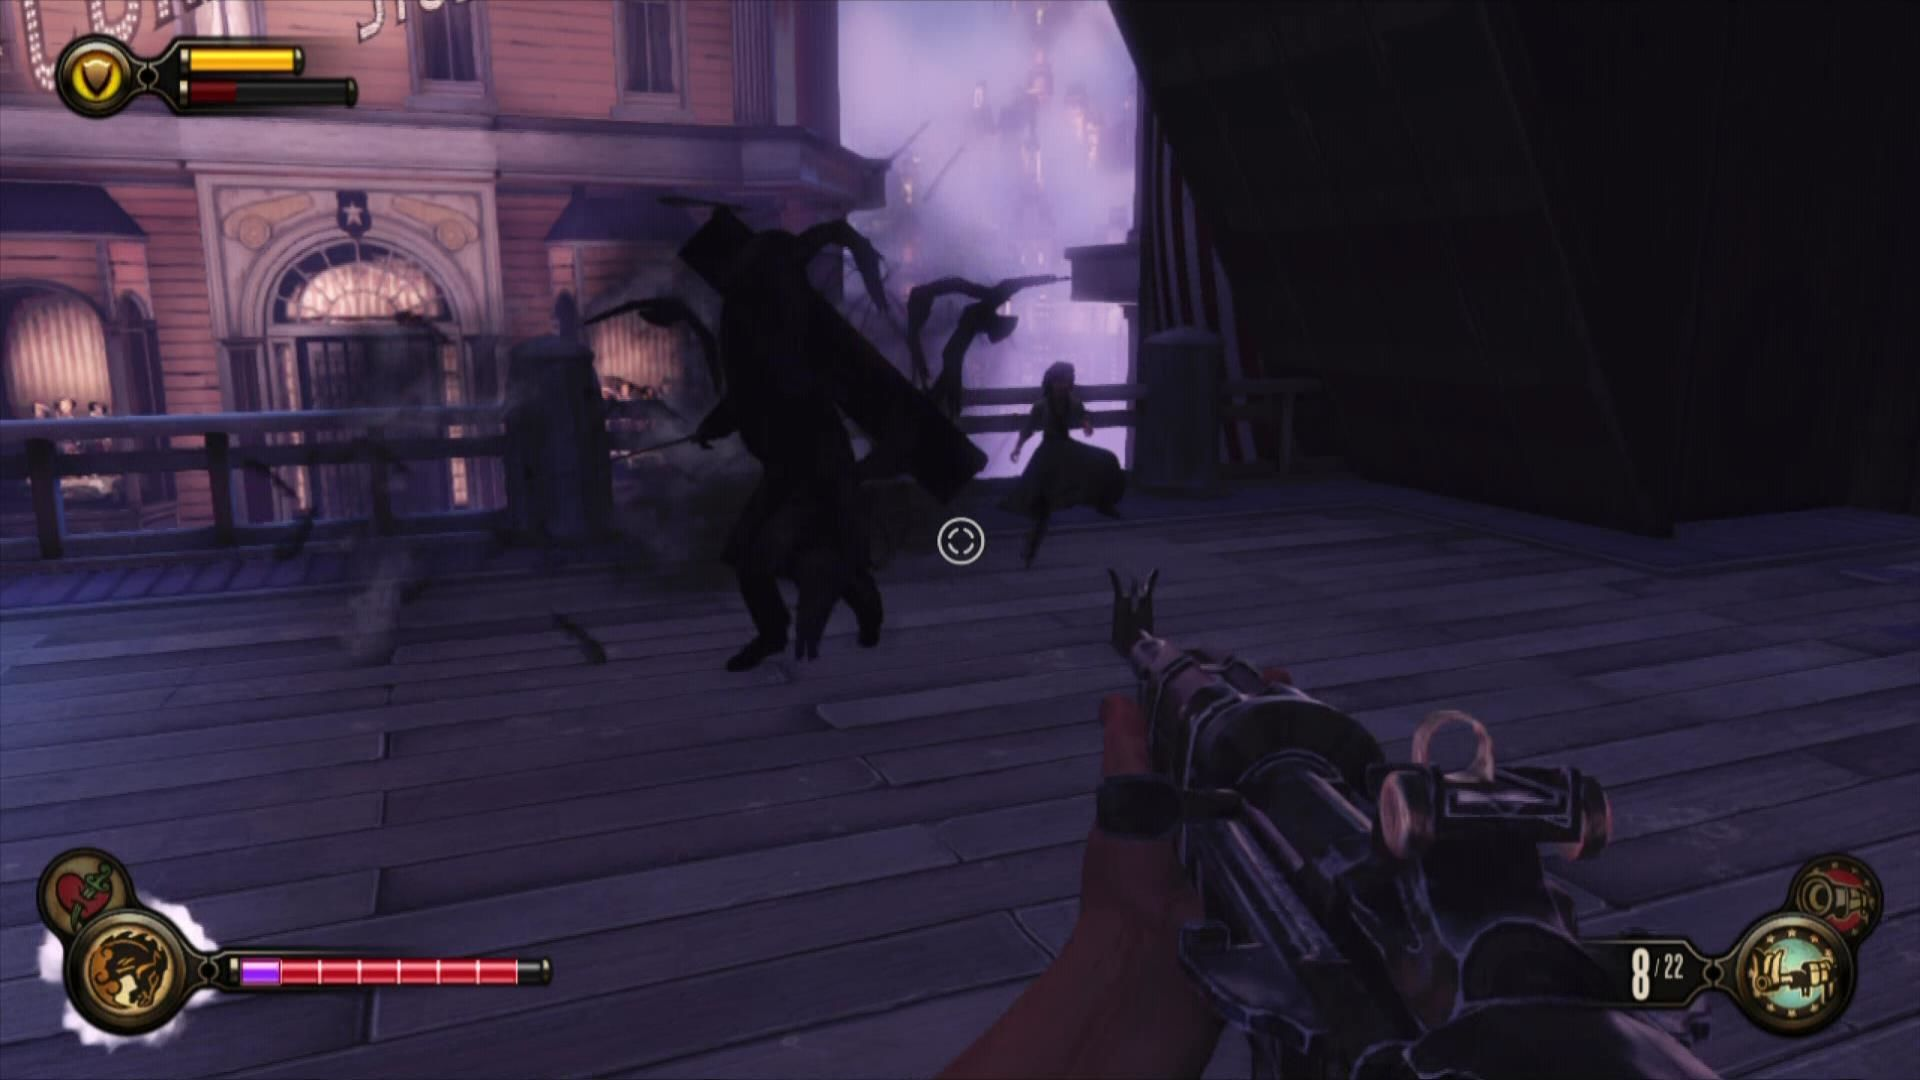 BioShock Infinite Xbox 360 Beware if you see a flock of crows.